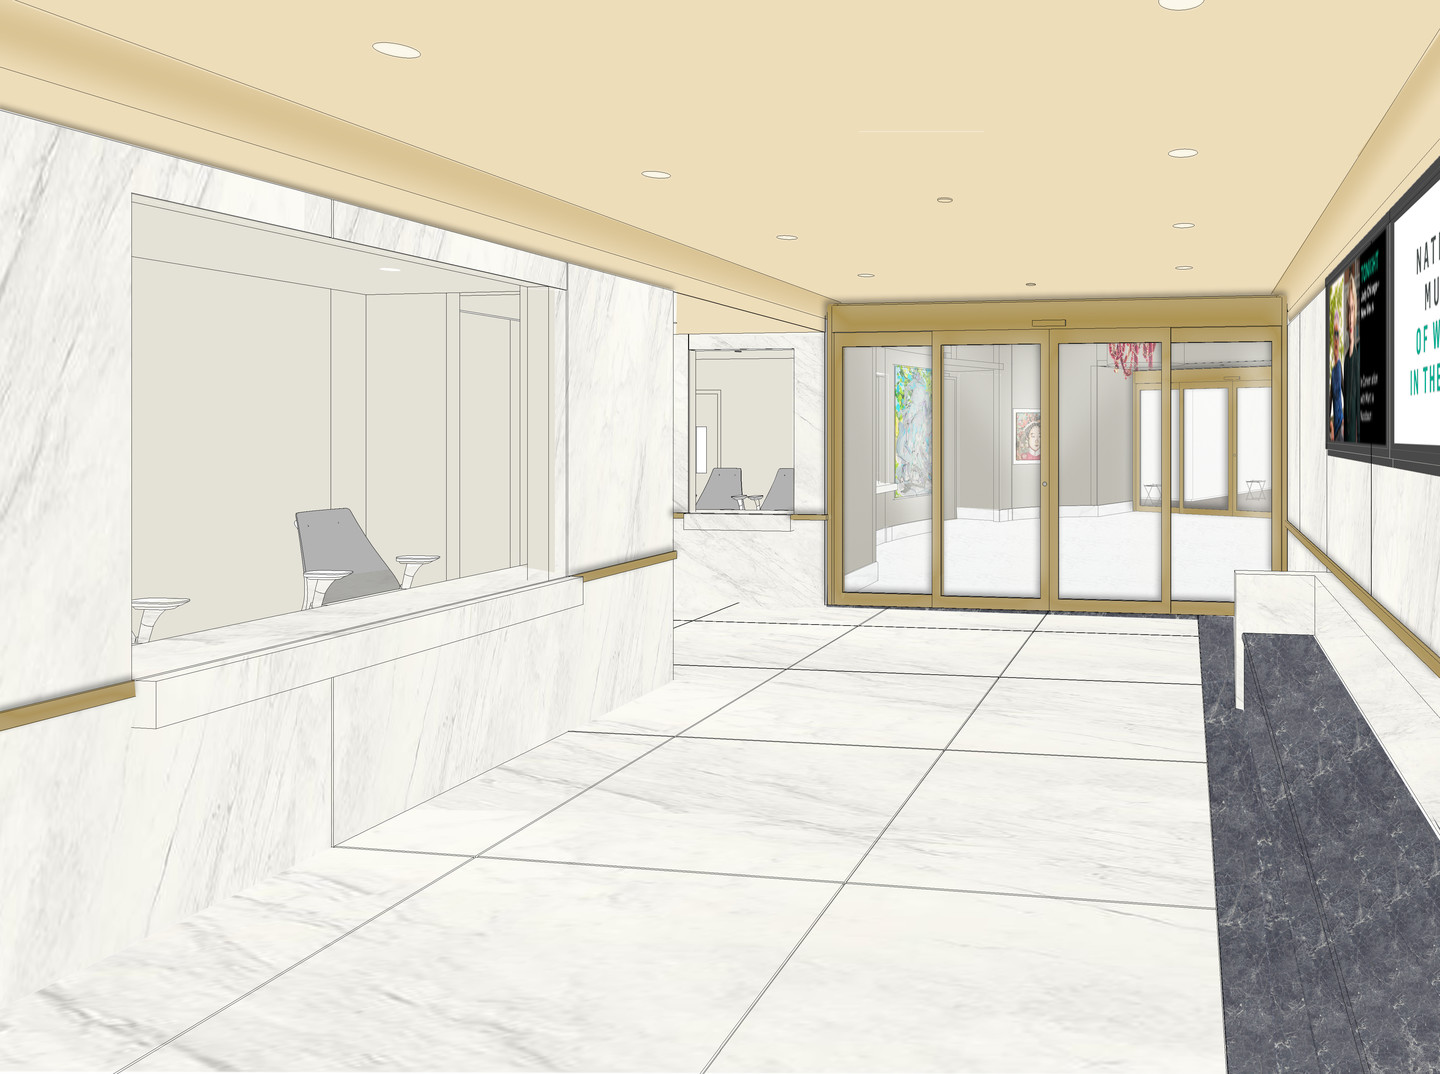 Architectural rendering of the museum lobby with glass doors, screen, and admission area.